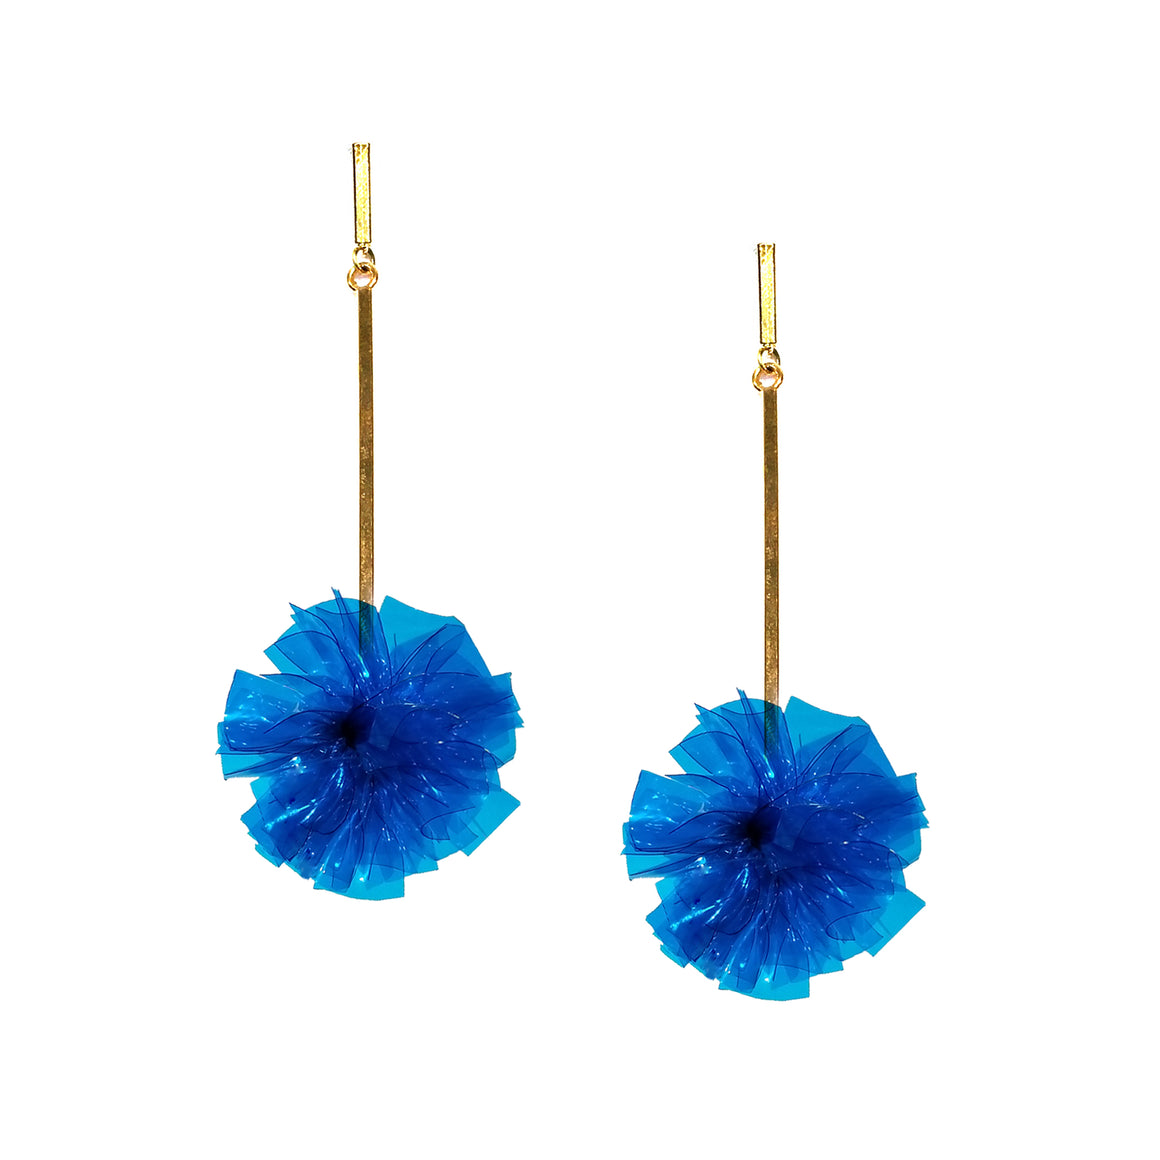 "Blue 1"" Vinyl Pom Pom Earrings, Earrings, Tuleste, Tuleste"